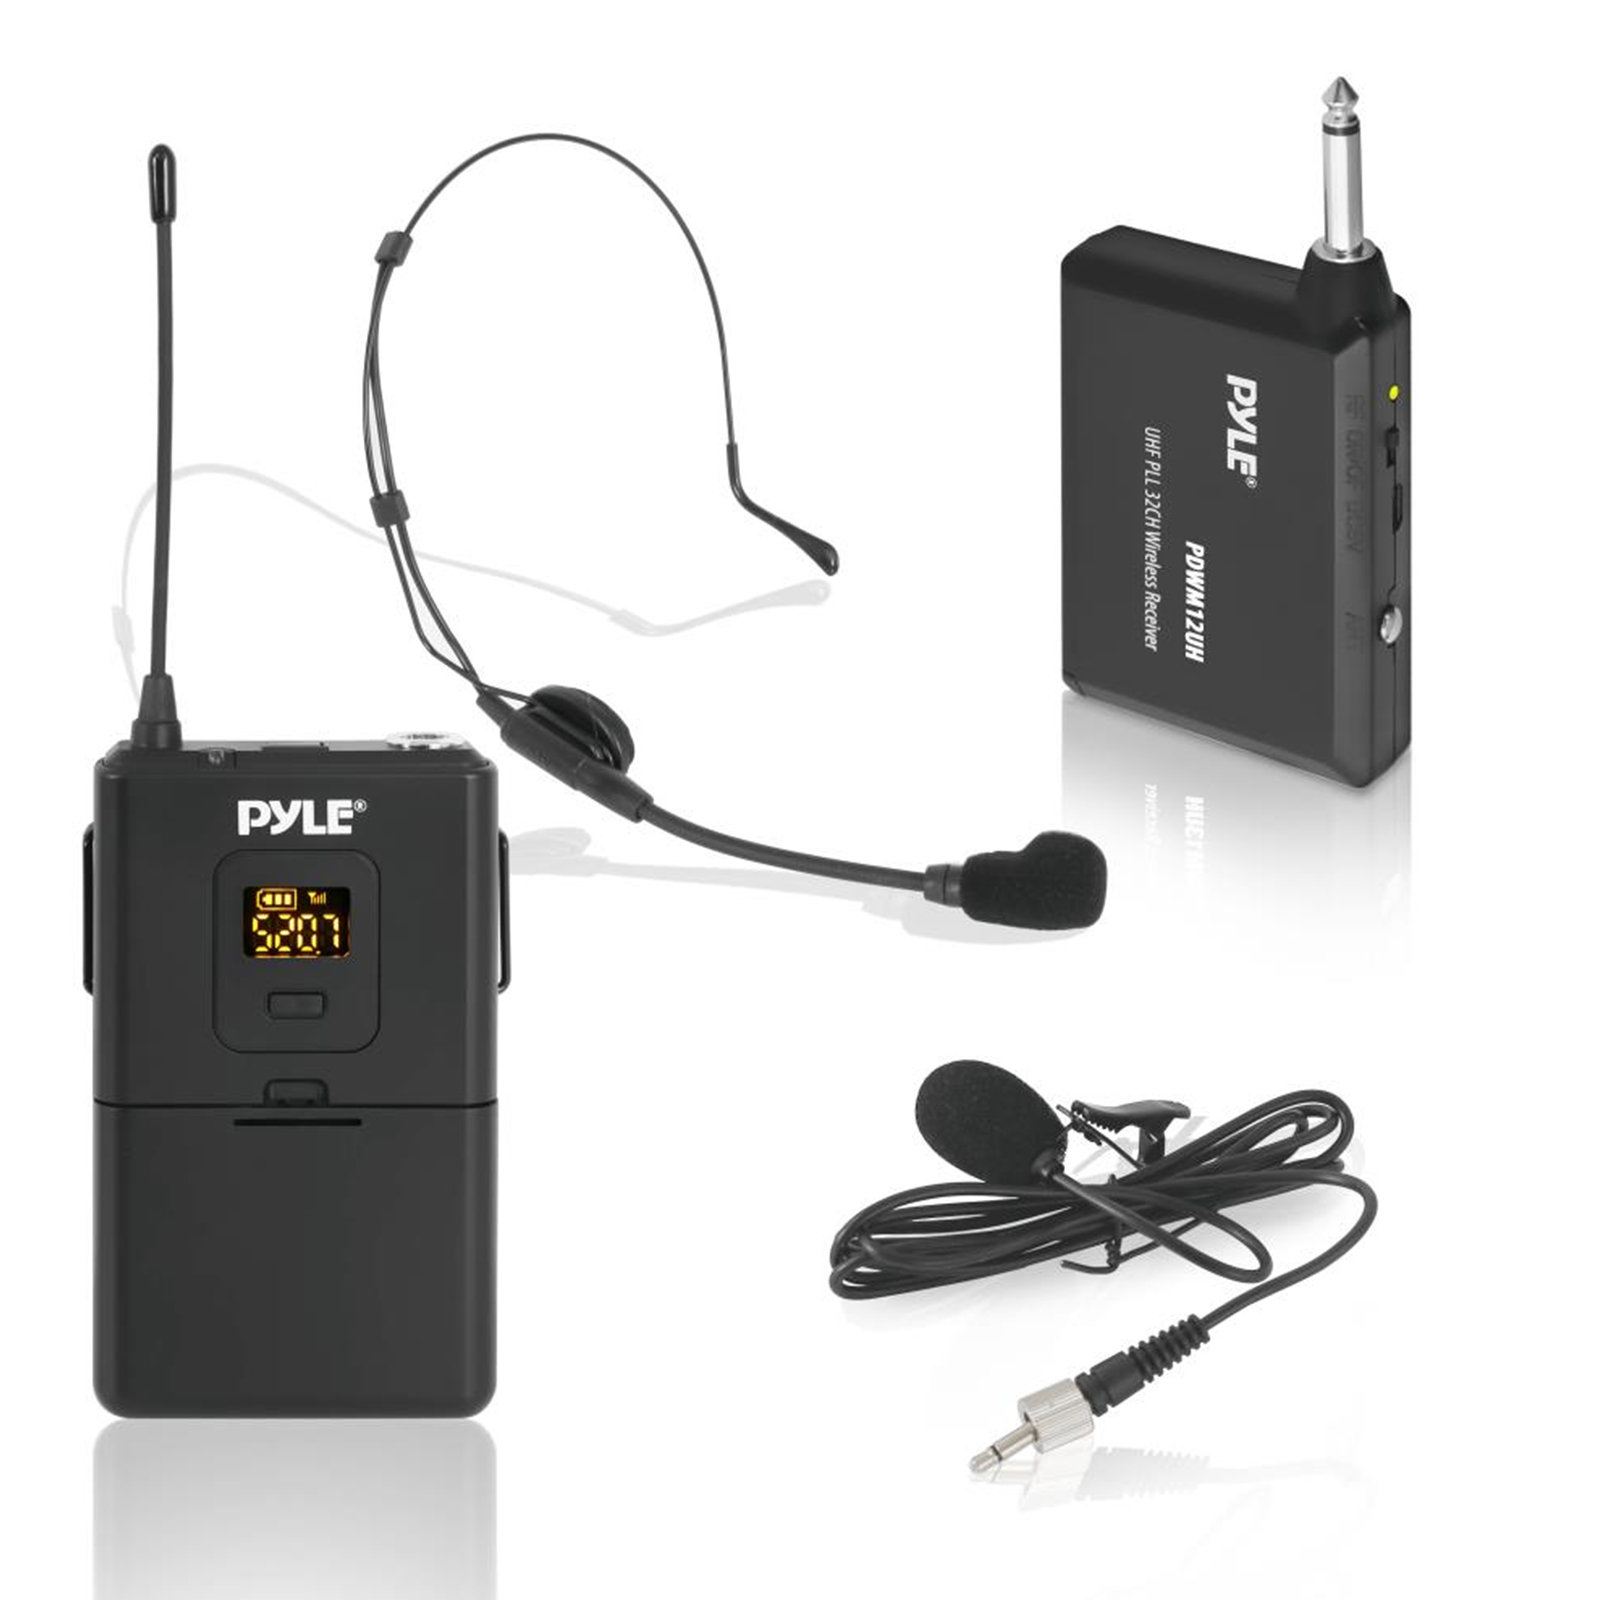 Pyle Wireless Microphone System, Beltpack Transmitter with Headset & Lavalier Mics